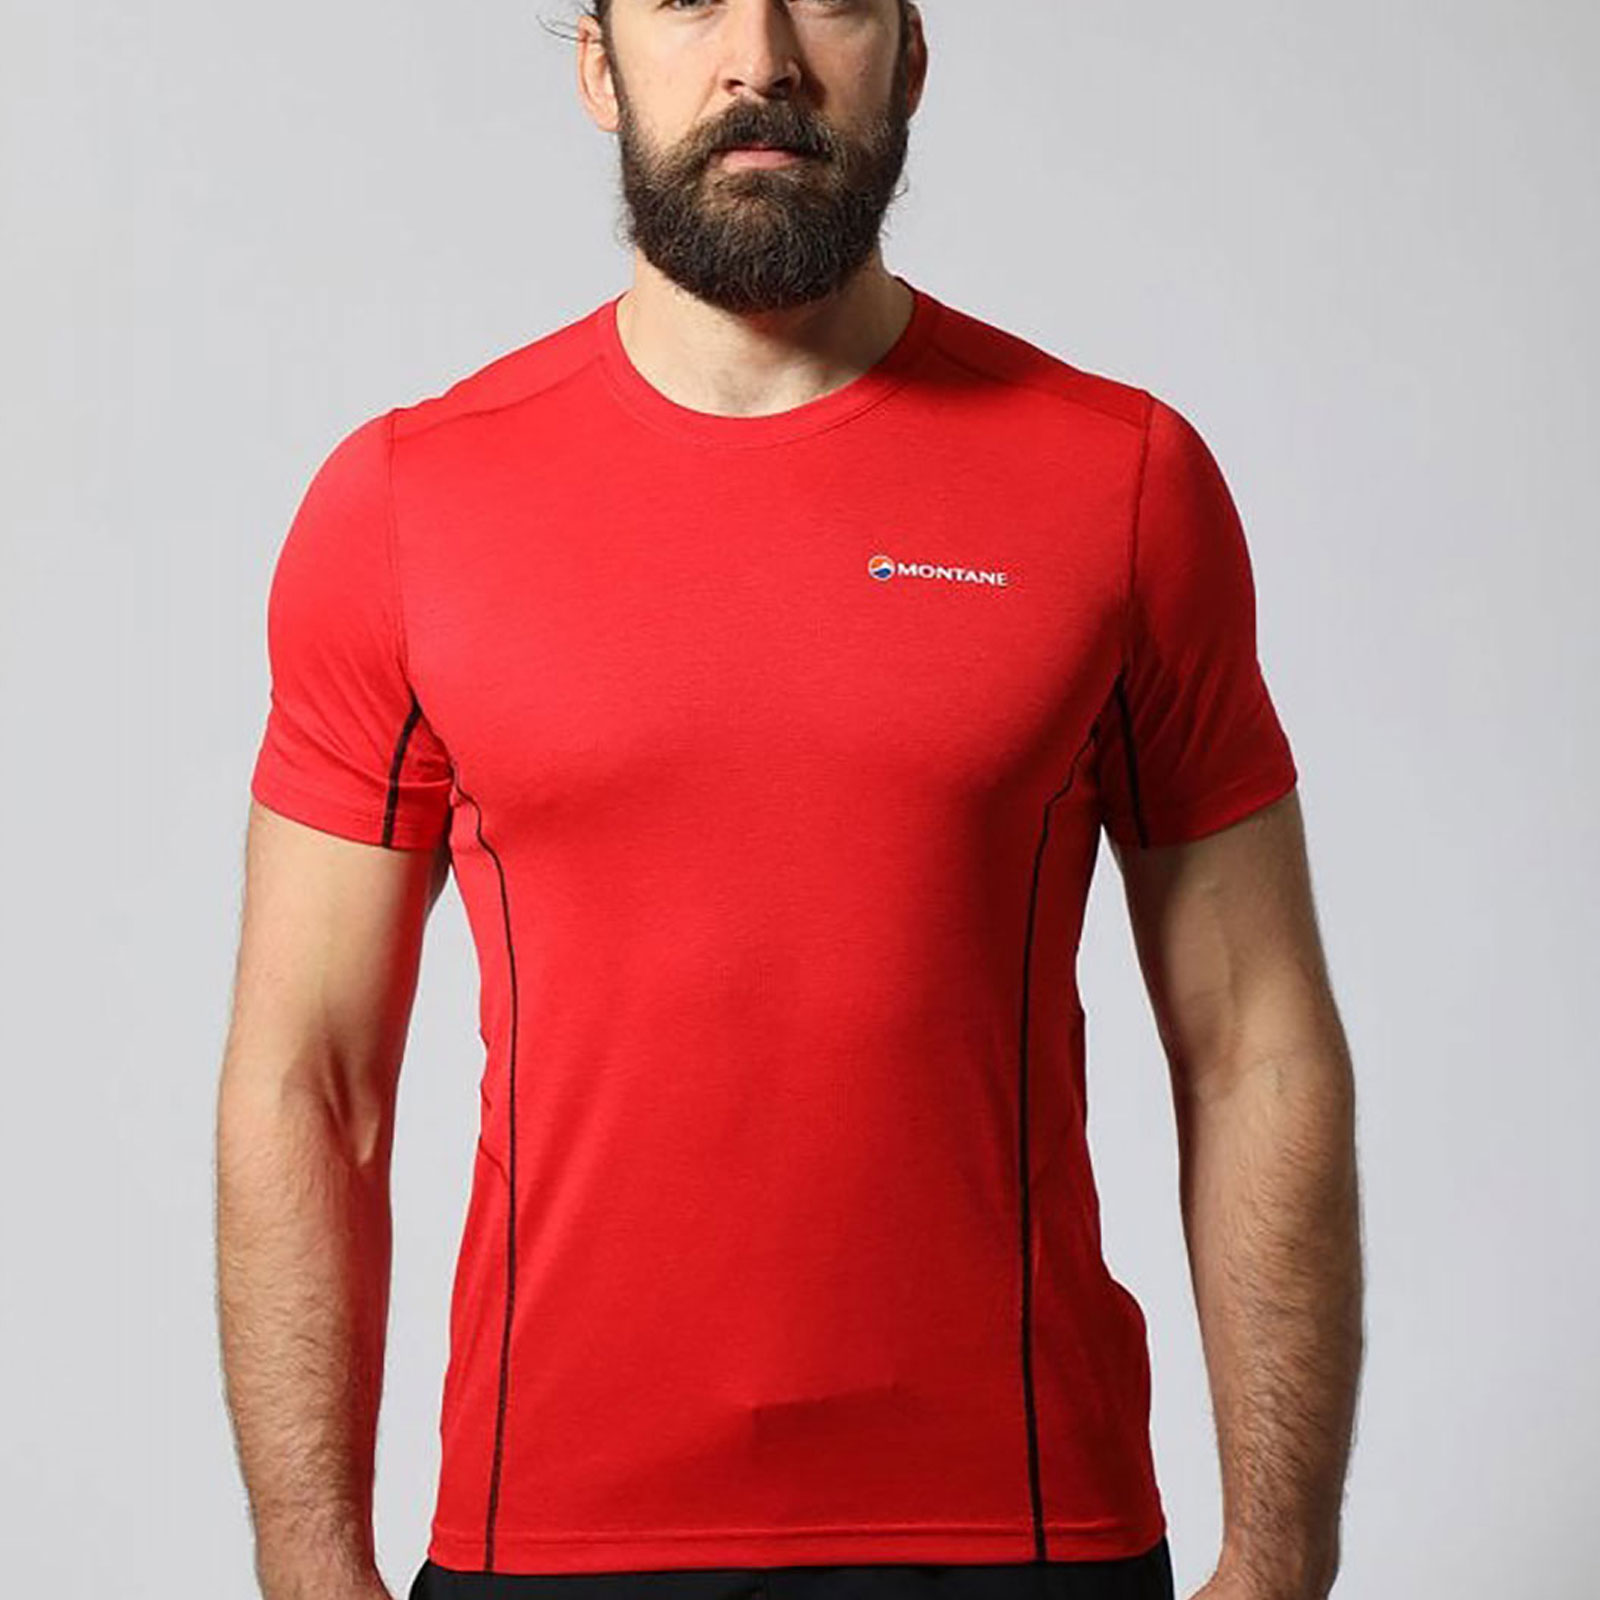 Red Sports Outdoors Breathable Lightweight Montane Mens Dart T Shirt Tee Top